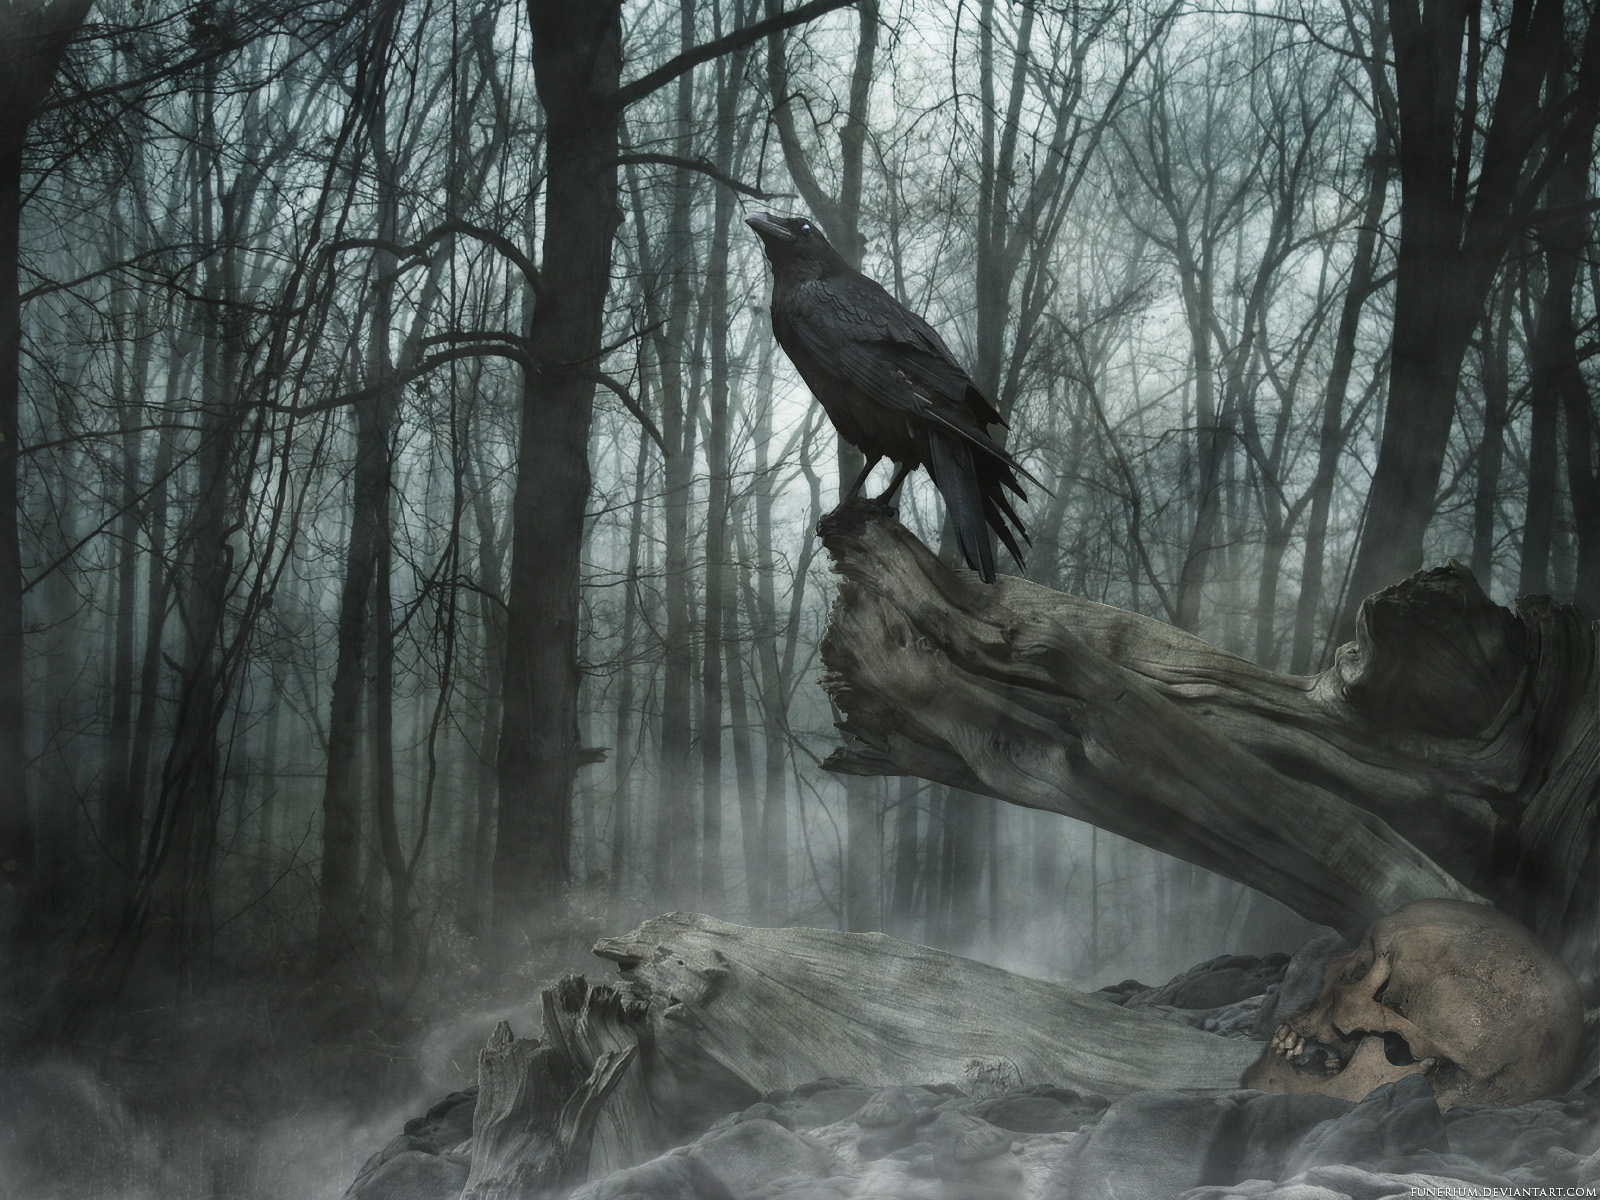 the raven Wallpaper Background 20449 1600x1200